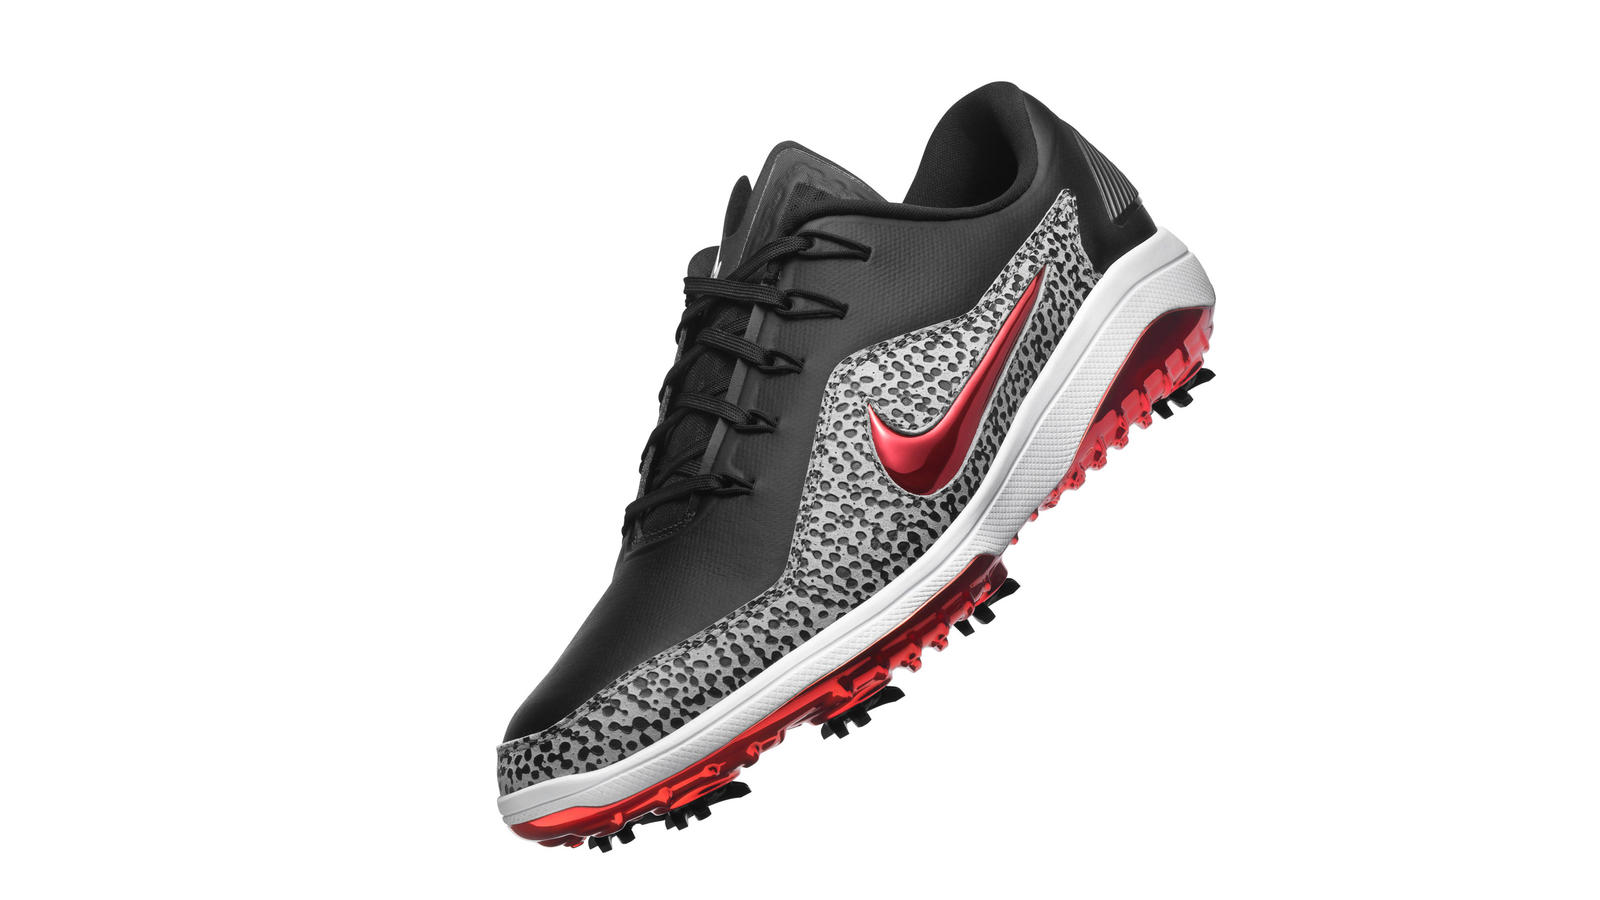 Nike Golf Summer 2019 Safari Bred Pack: Official Images and Relase Date 1